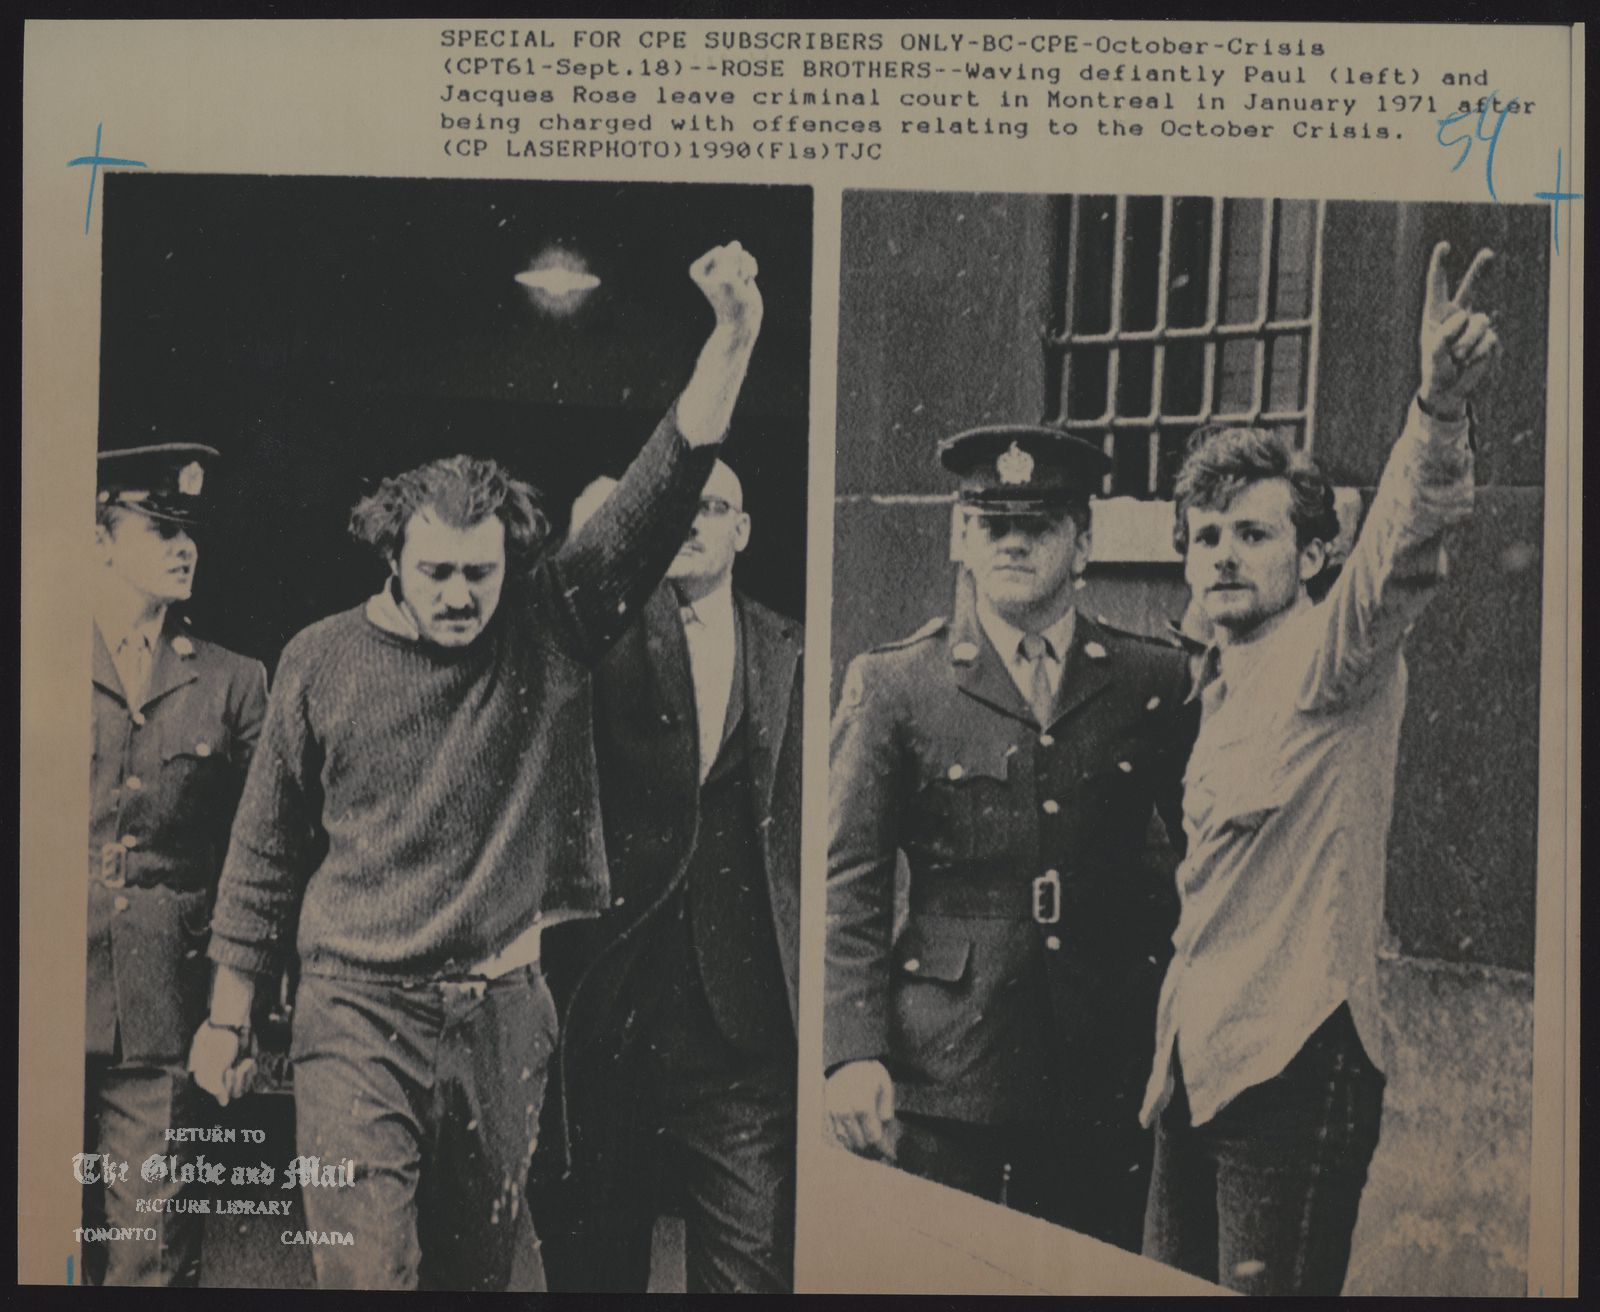 The notes transcribed from the back of this photograph are as follows: PAUL JACQUE ROSE QUEBEC. FLQ MEMBERS SPECIAL FOR CPE SUBSCRIBERS ONLY-BC-CPE-October-Cr1sis(CPT61 -Sept.18)--ROSE BROTHERS--Waving defiantly Paul (left) and Jacques Rose leave criminal court in Montreal In January 1971 after being charged with offences relating to the October Crisis. (CP LASERPHOTO)1990(F1s)TJC